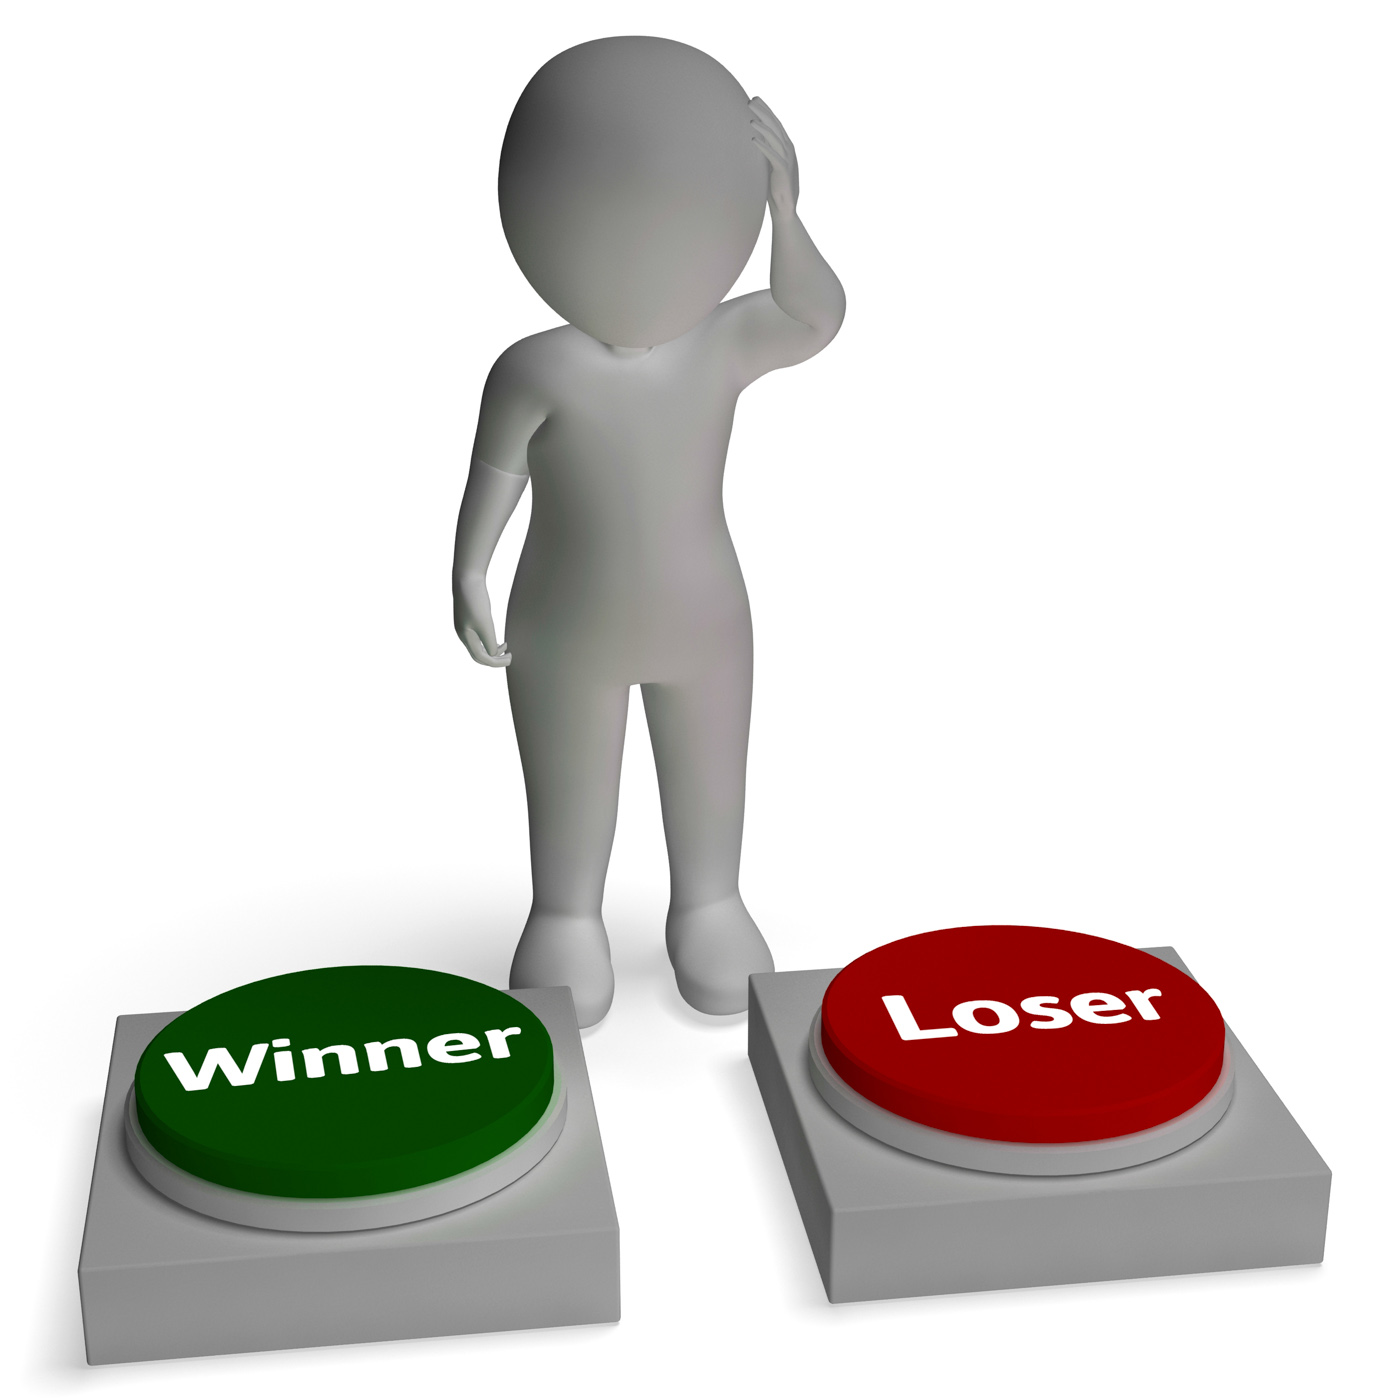 Winner loser buttons shows winning or losing photo